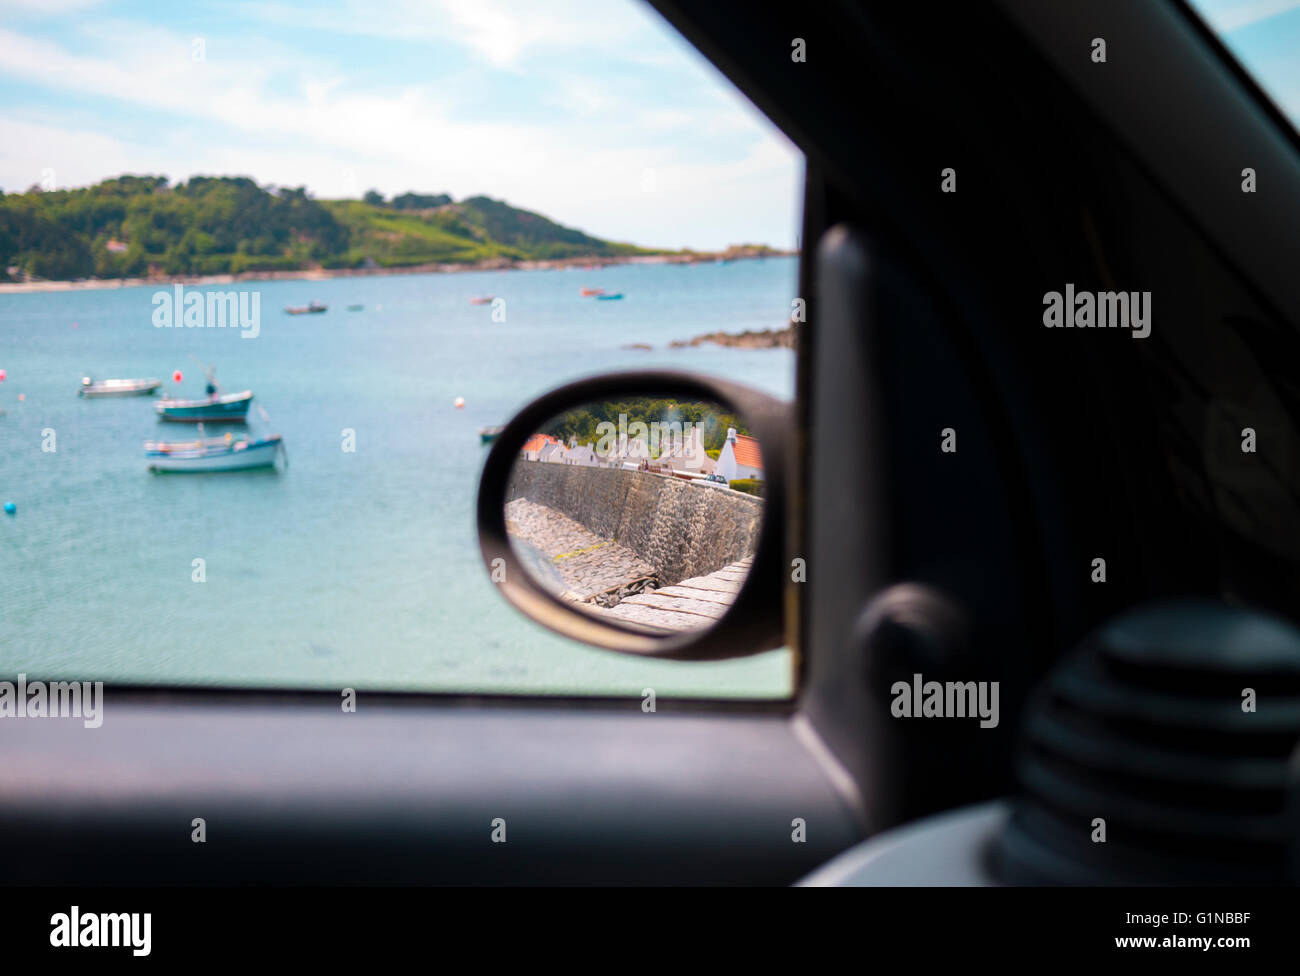 Unique view out a car window of a picturesque beach with fishing boats in Guernsey, Channel Island. - Stock Image